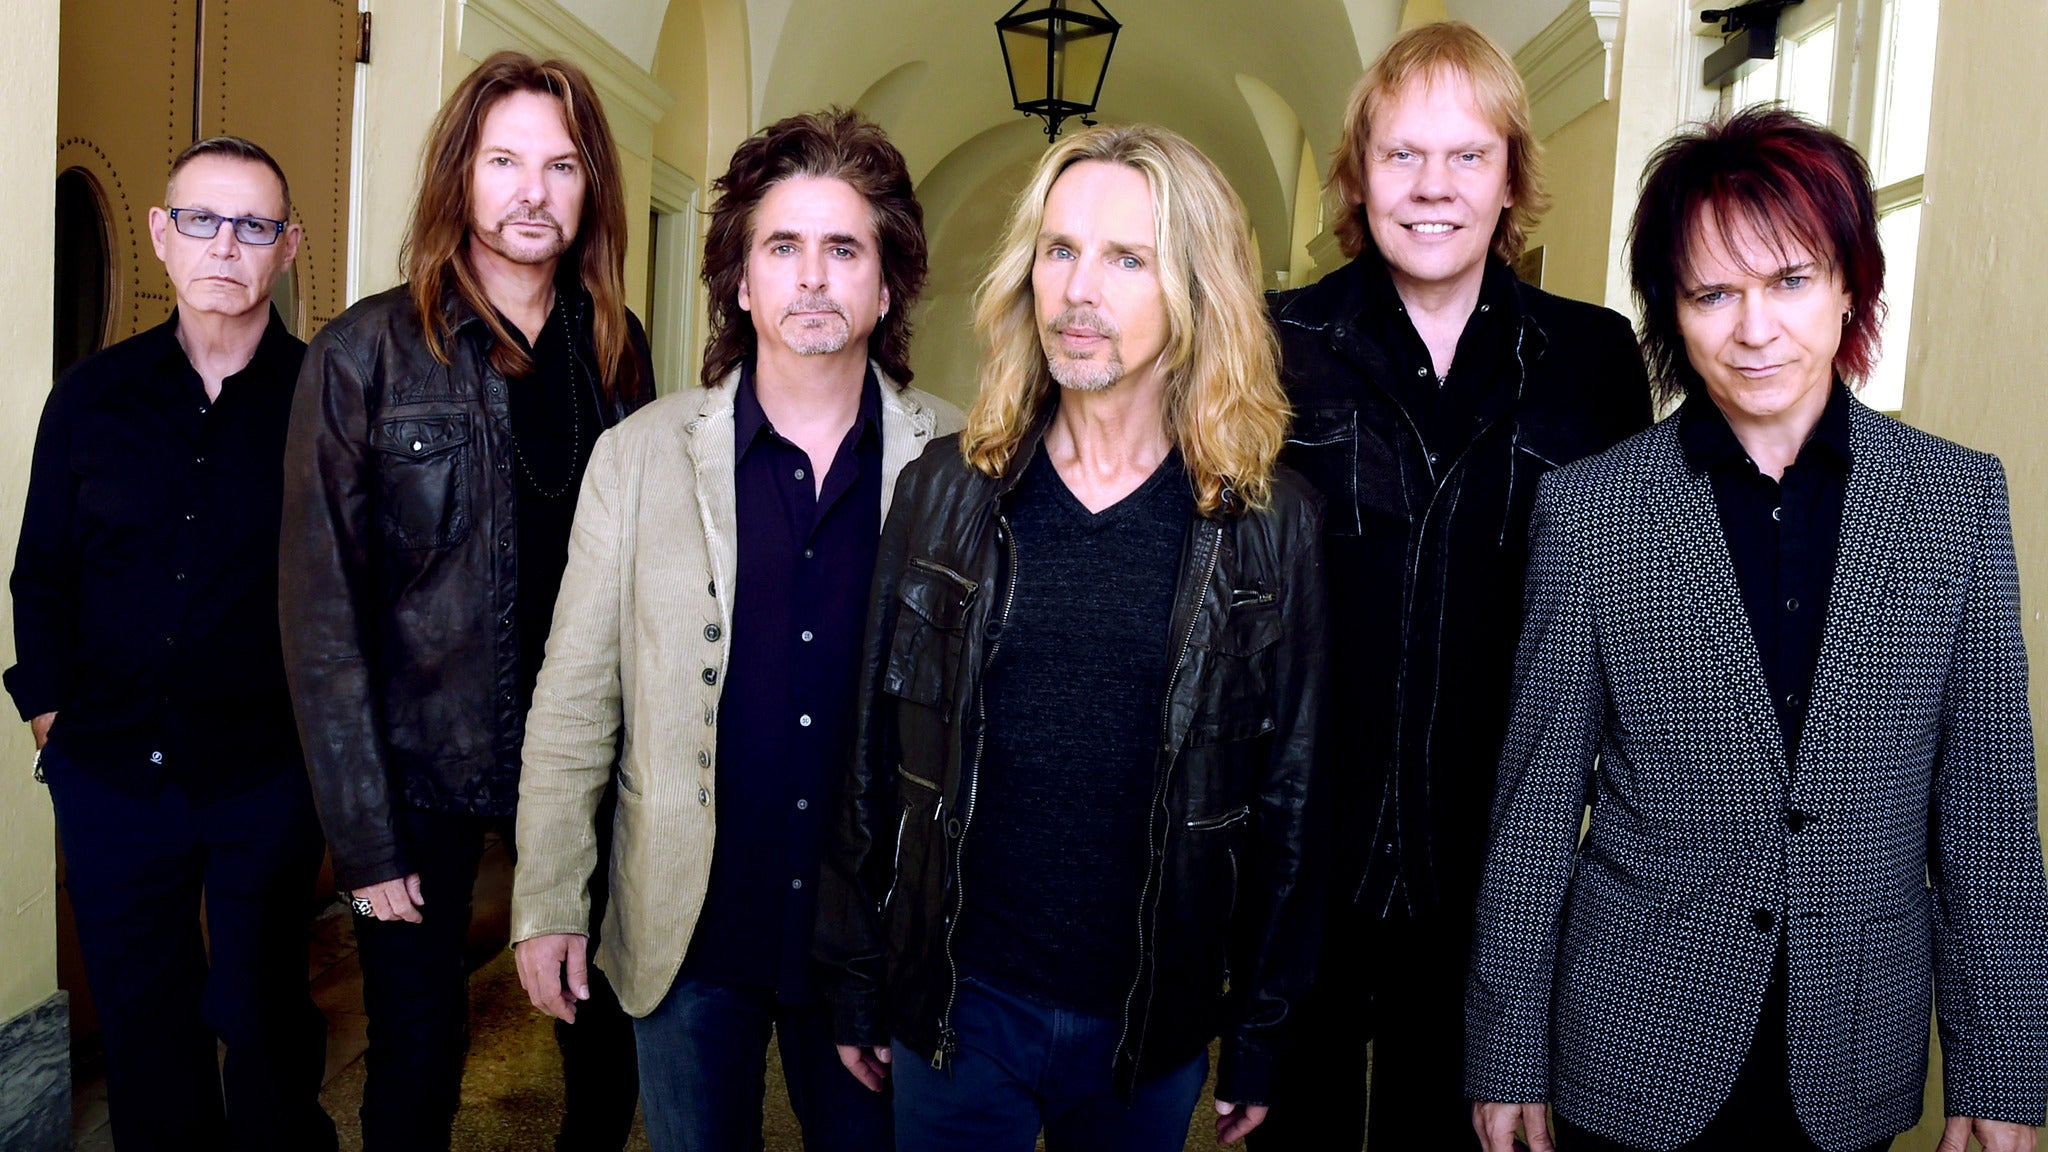 Styx at The Saban